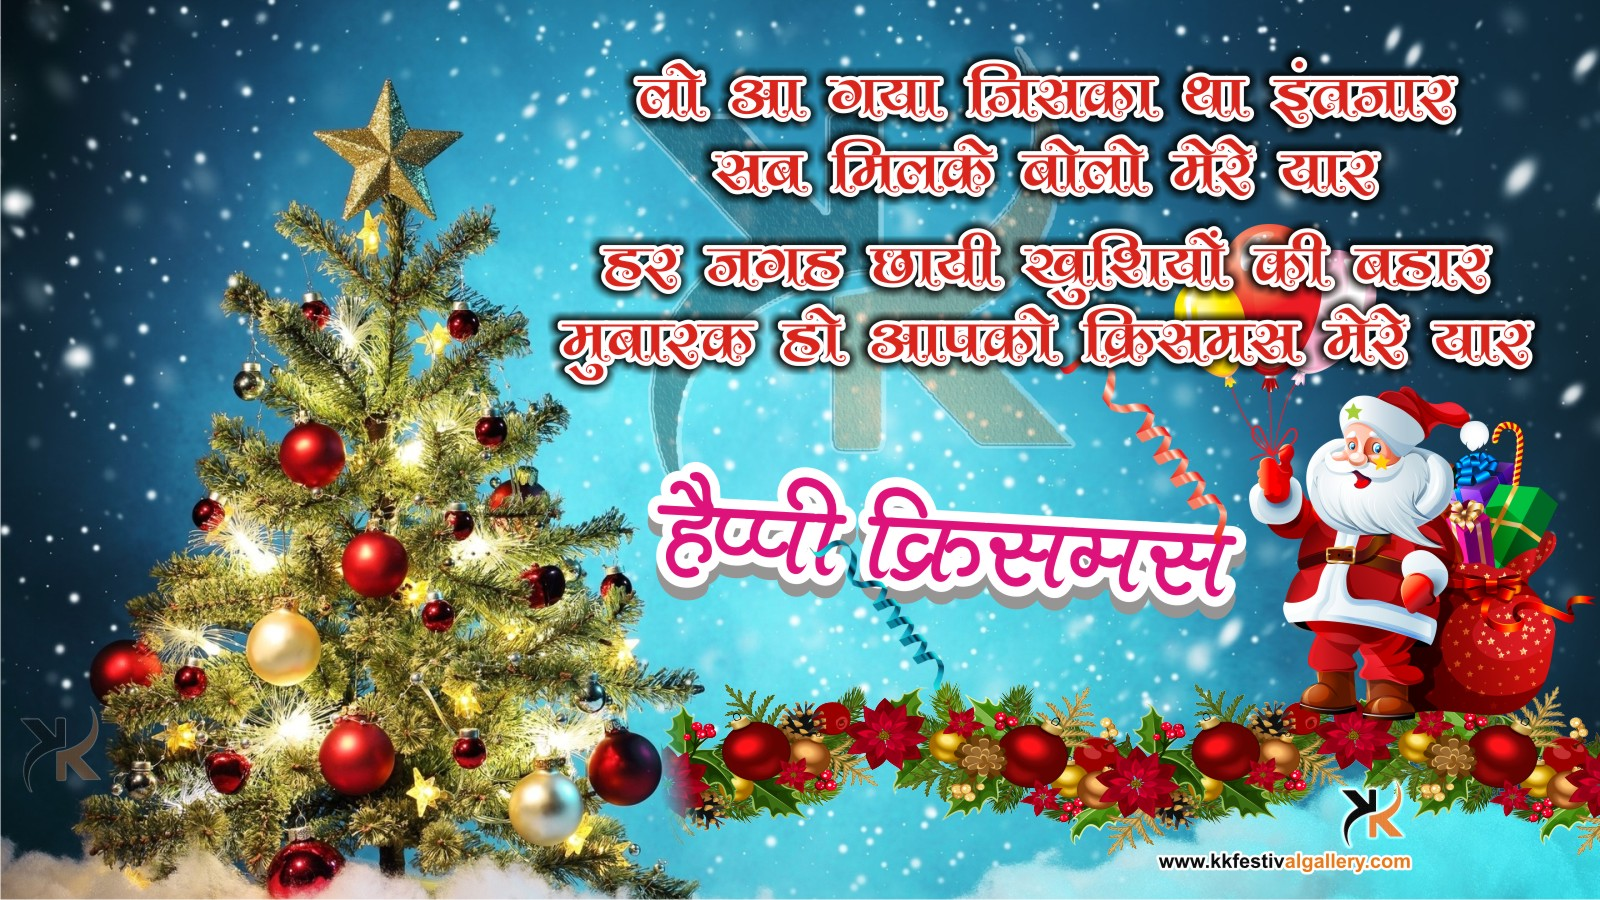 Kk Festival Gallery Marry Christmas Best Greetings Wishes Hd